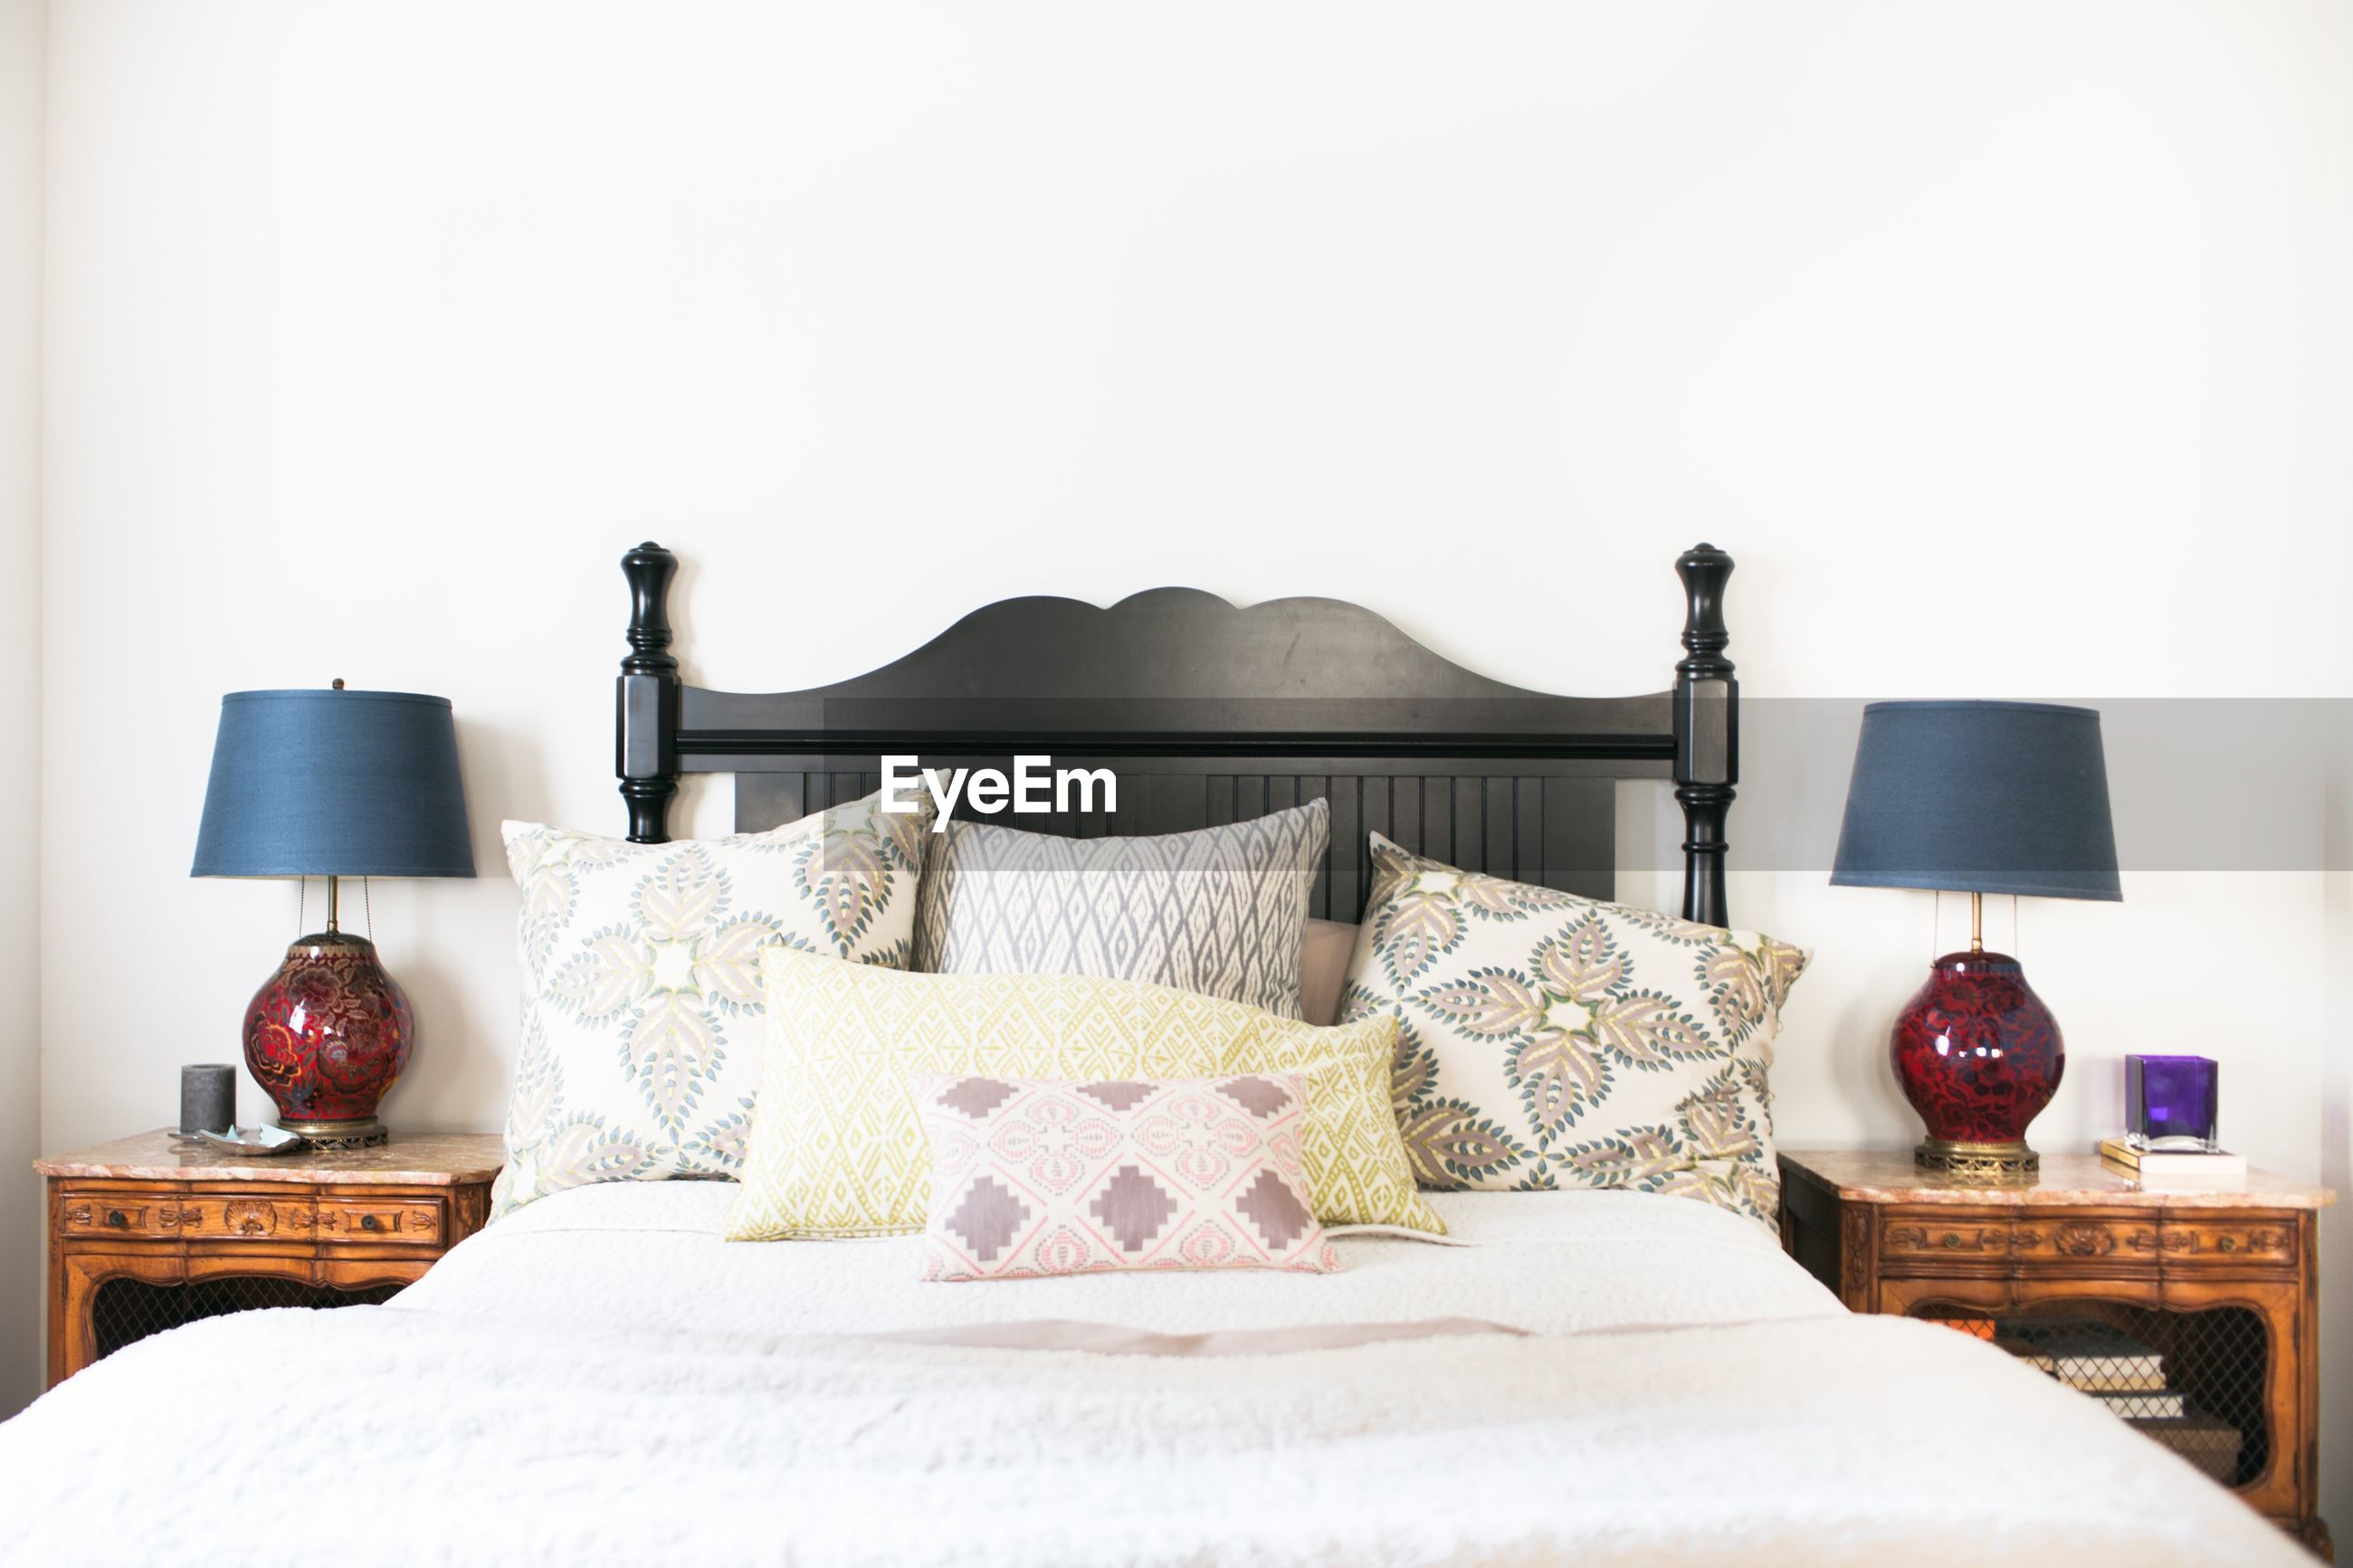 ELECTRIC LAMP ON BED AGAINST WALL